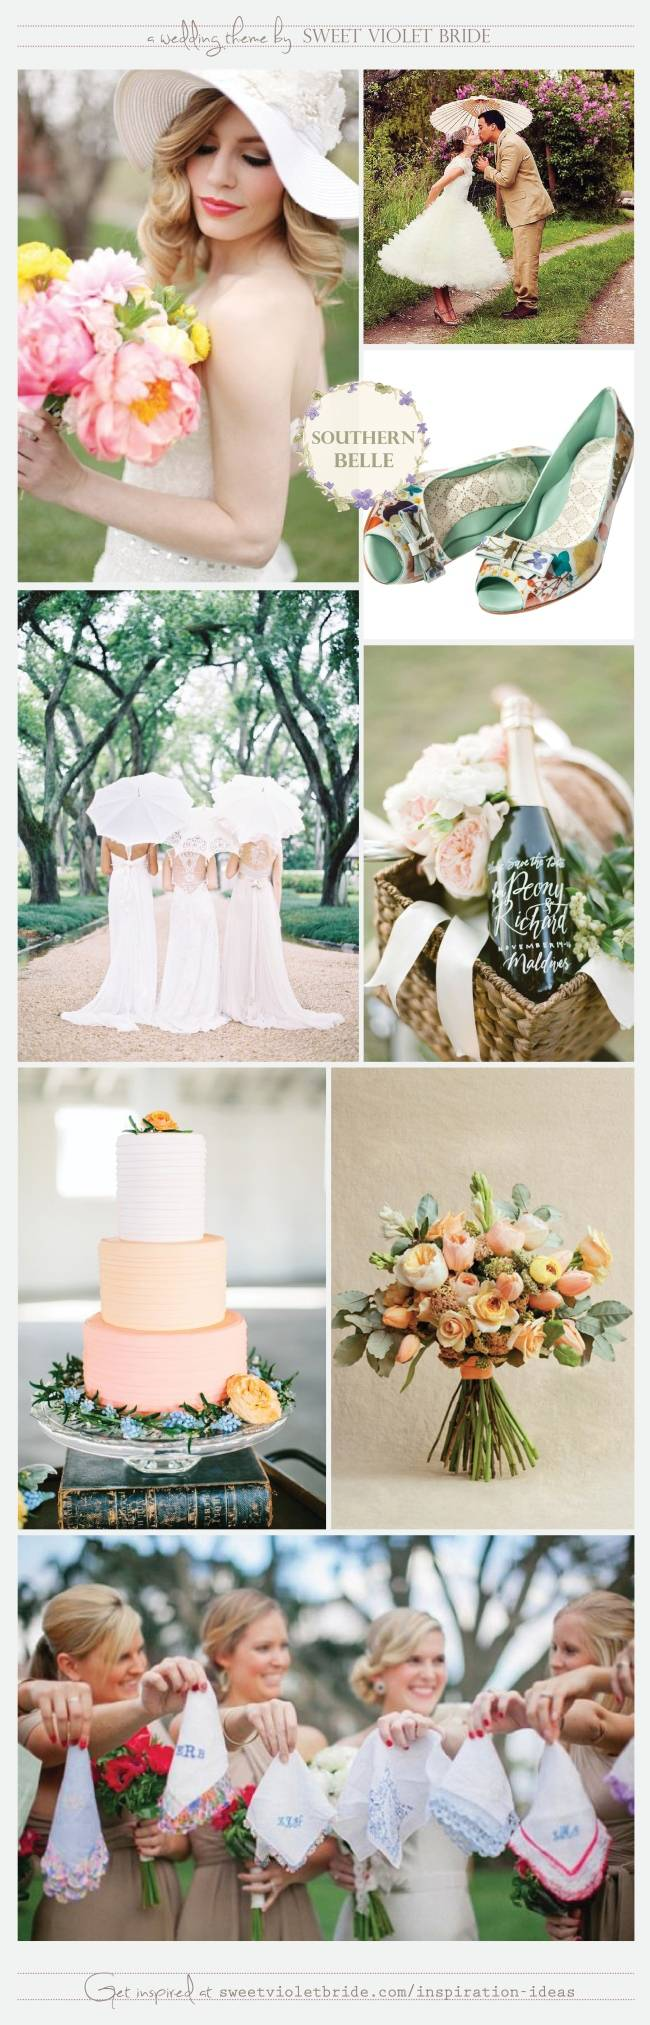 Wedding Inspiration Board #25: Southern Belle